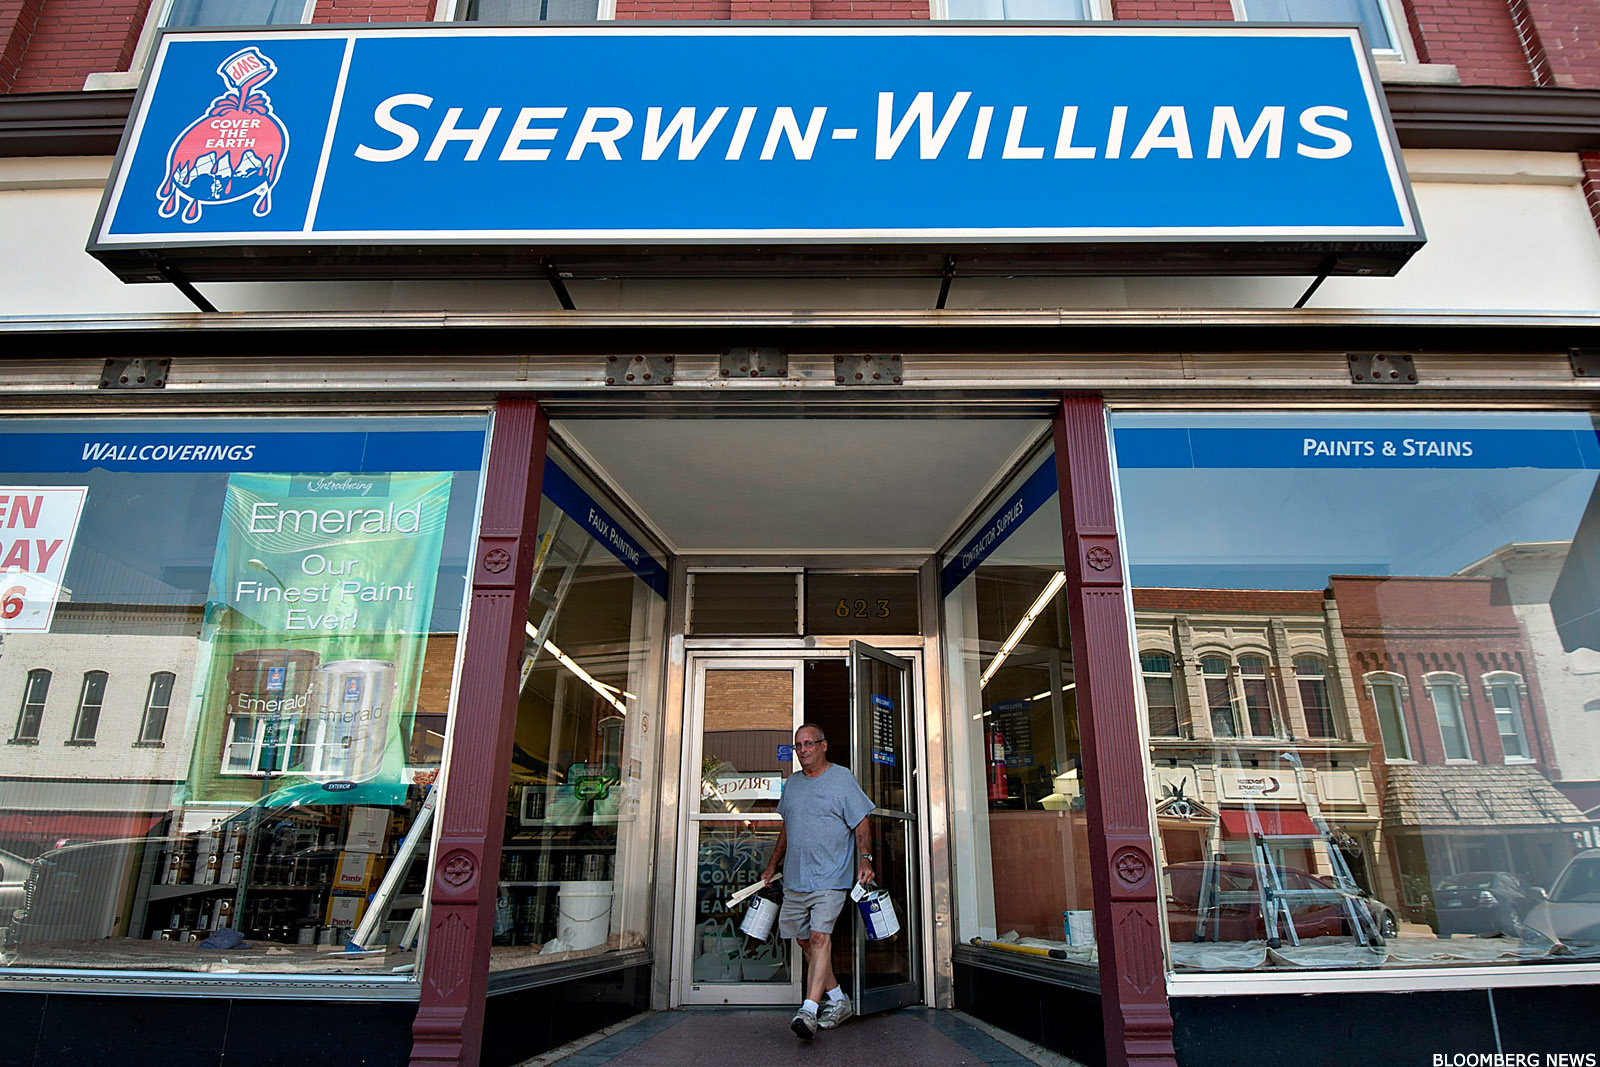 Sherwin Williams Stock Quote Sherwinwilliams Shw Stock Drops On Q3 Earnings Miss Guidance